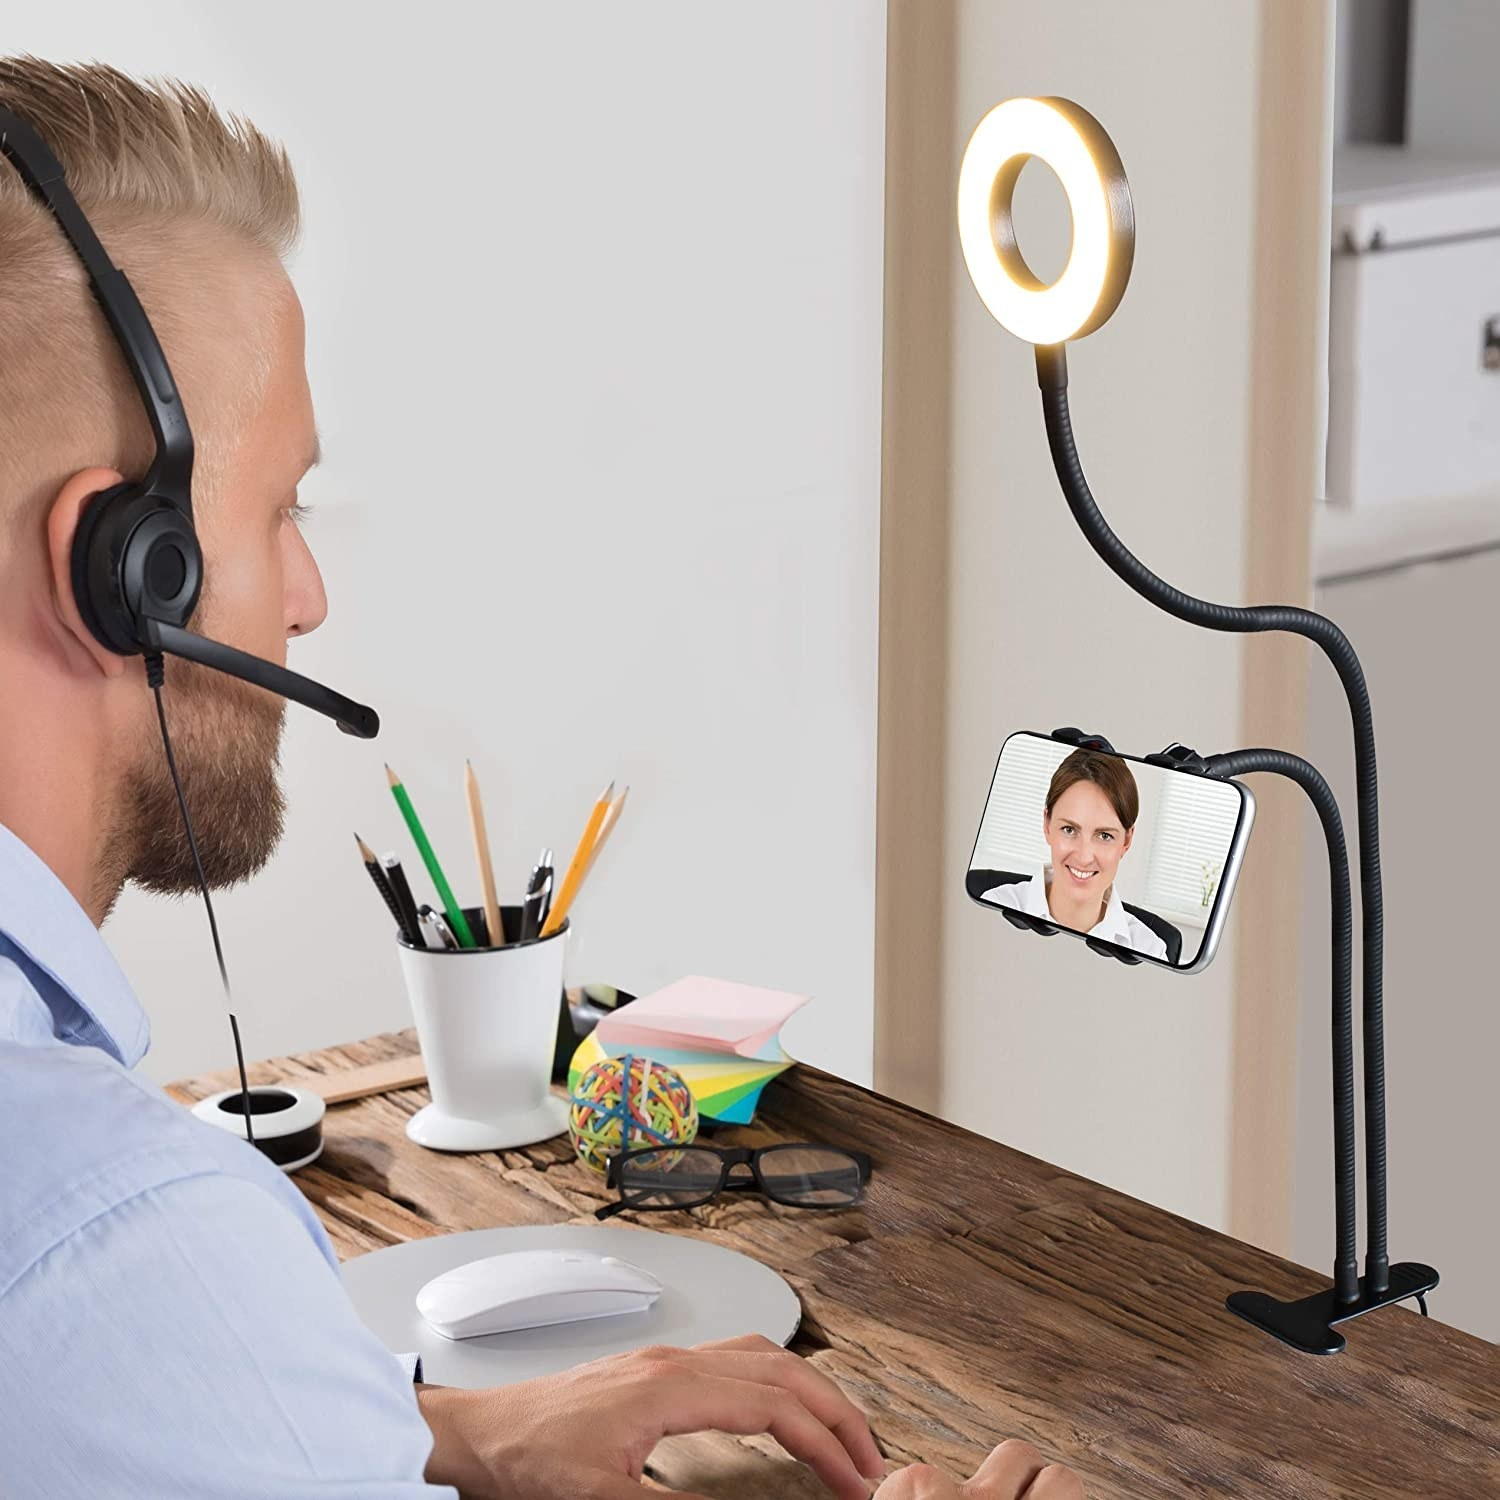 A person using the phone ring light stand